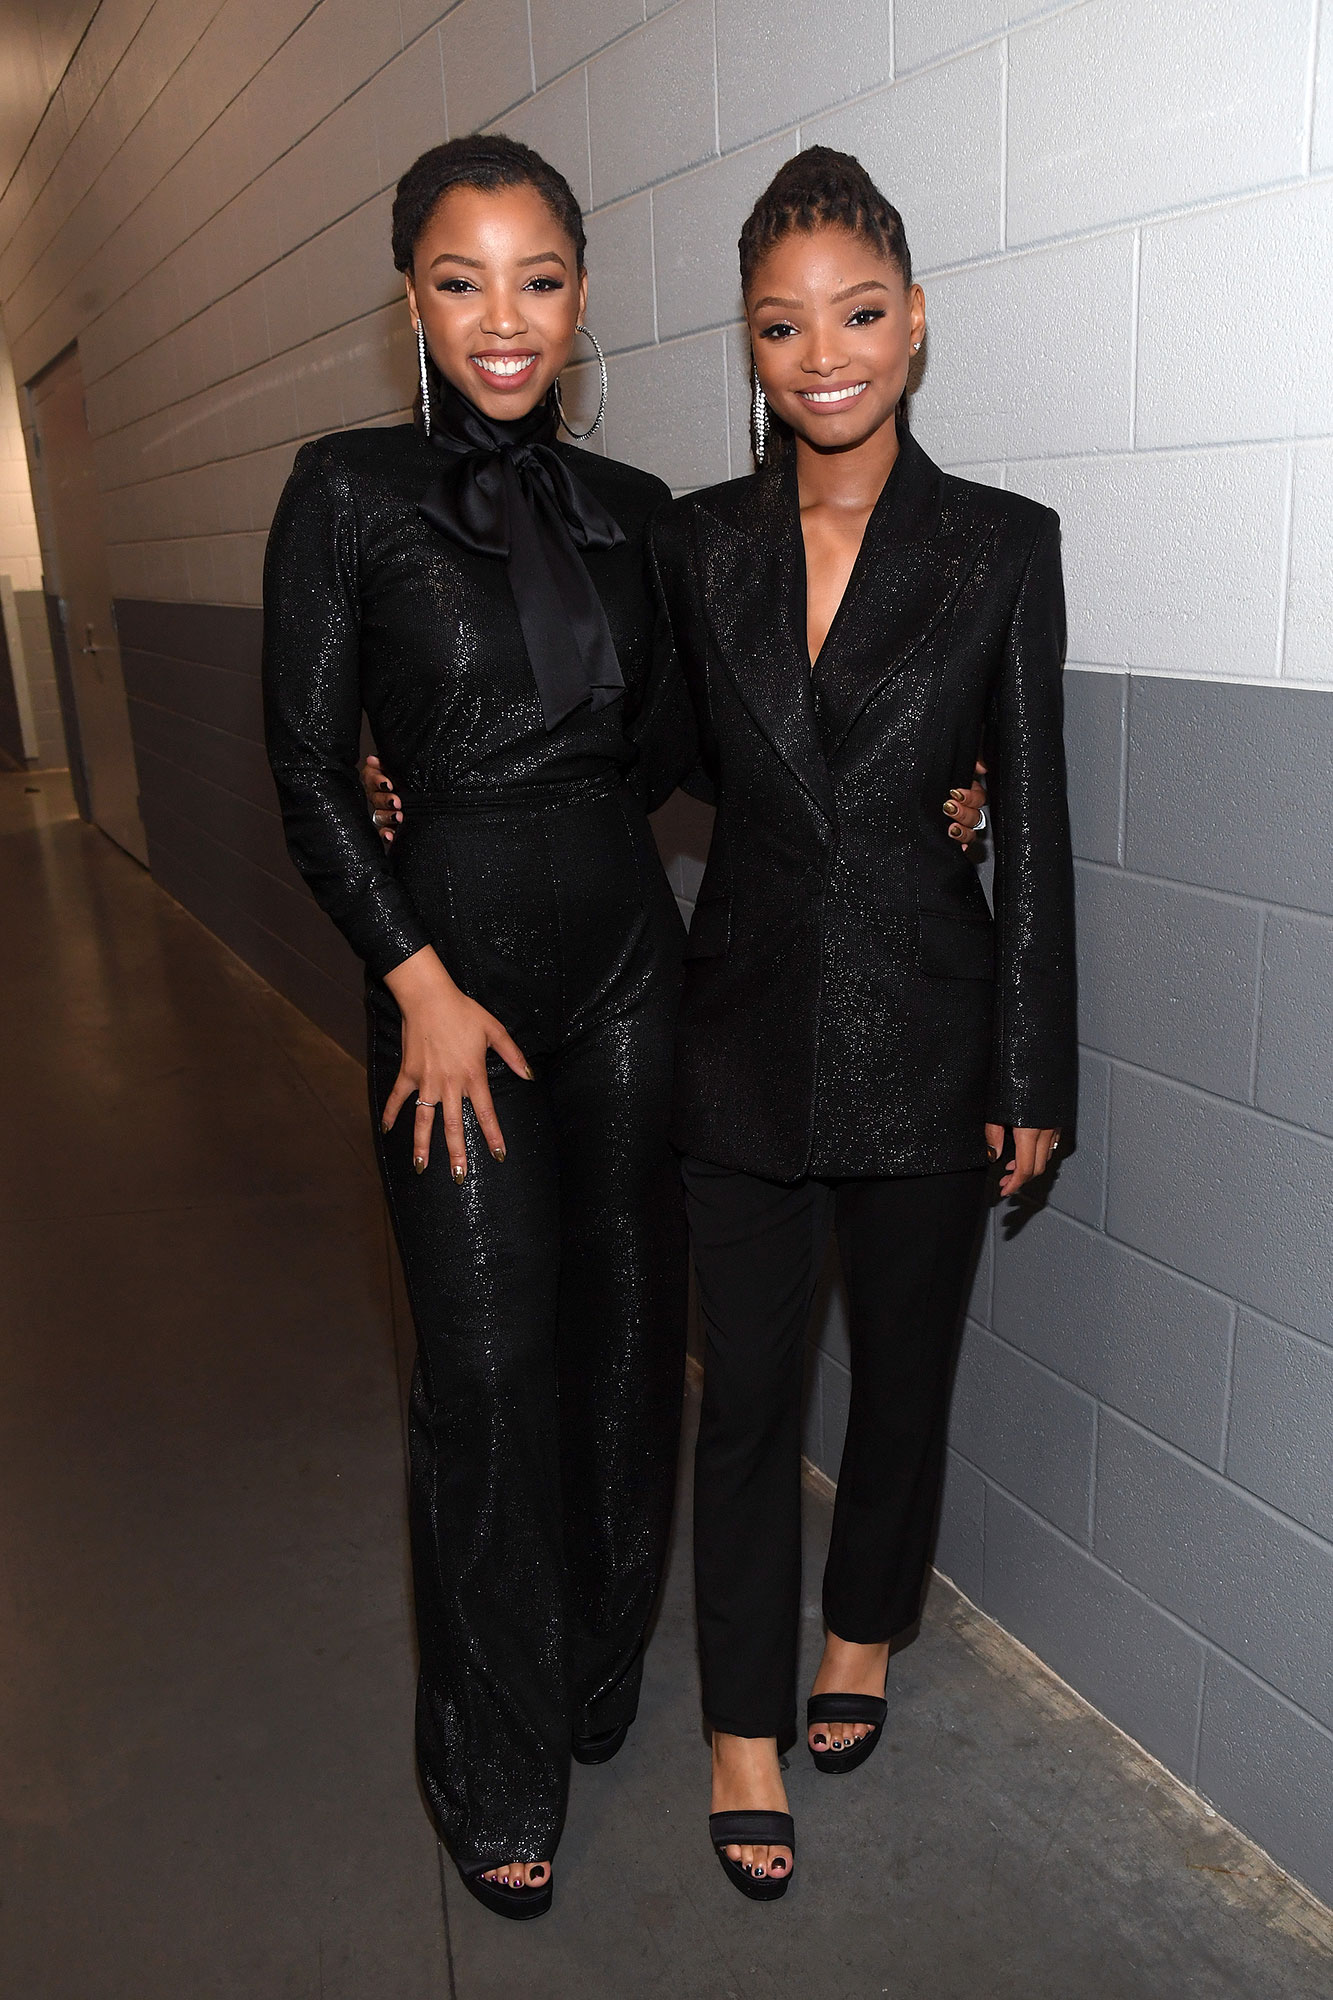 Gallery Super-Bowl-53-Chloe-X-Halle - The R&B duo wore shimmery black outfits for their pre-game performance.